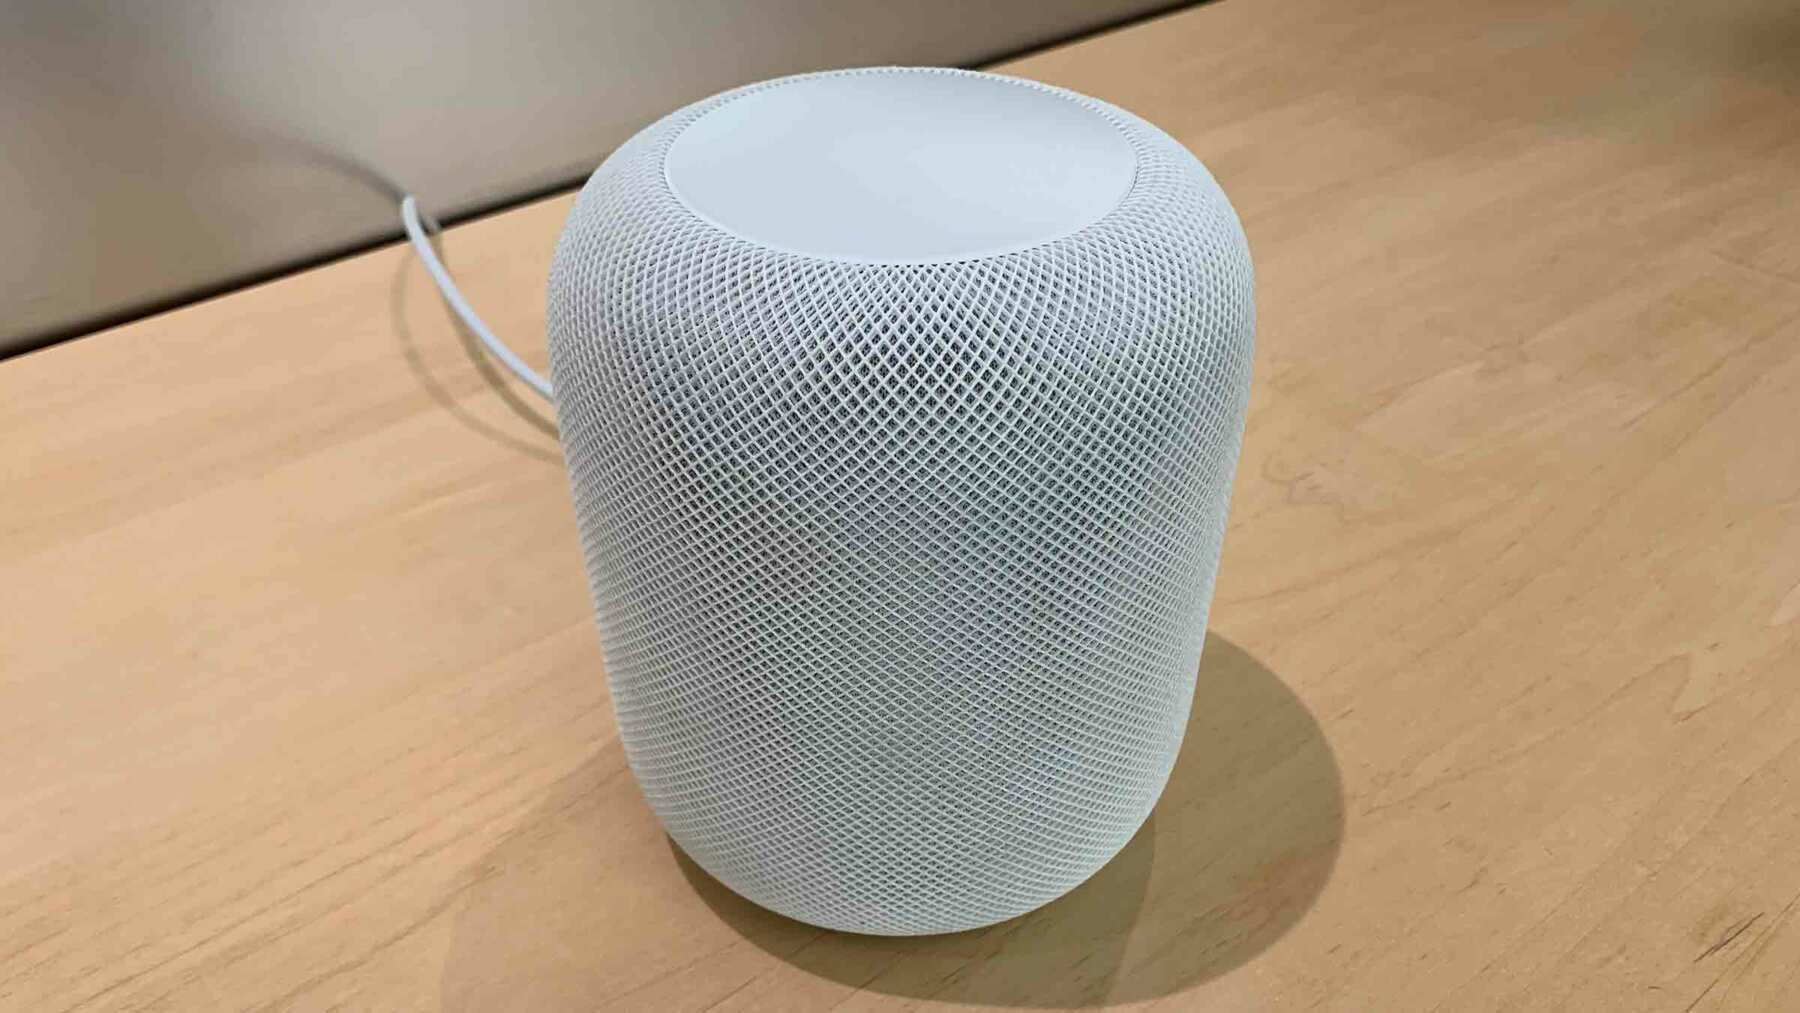 A white Apple HomePod sitting on a blonde woodgrain tabletop.